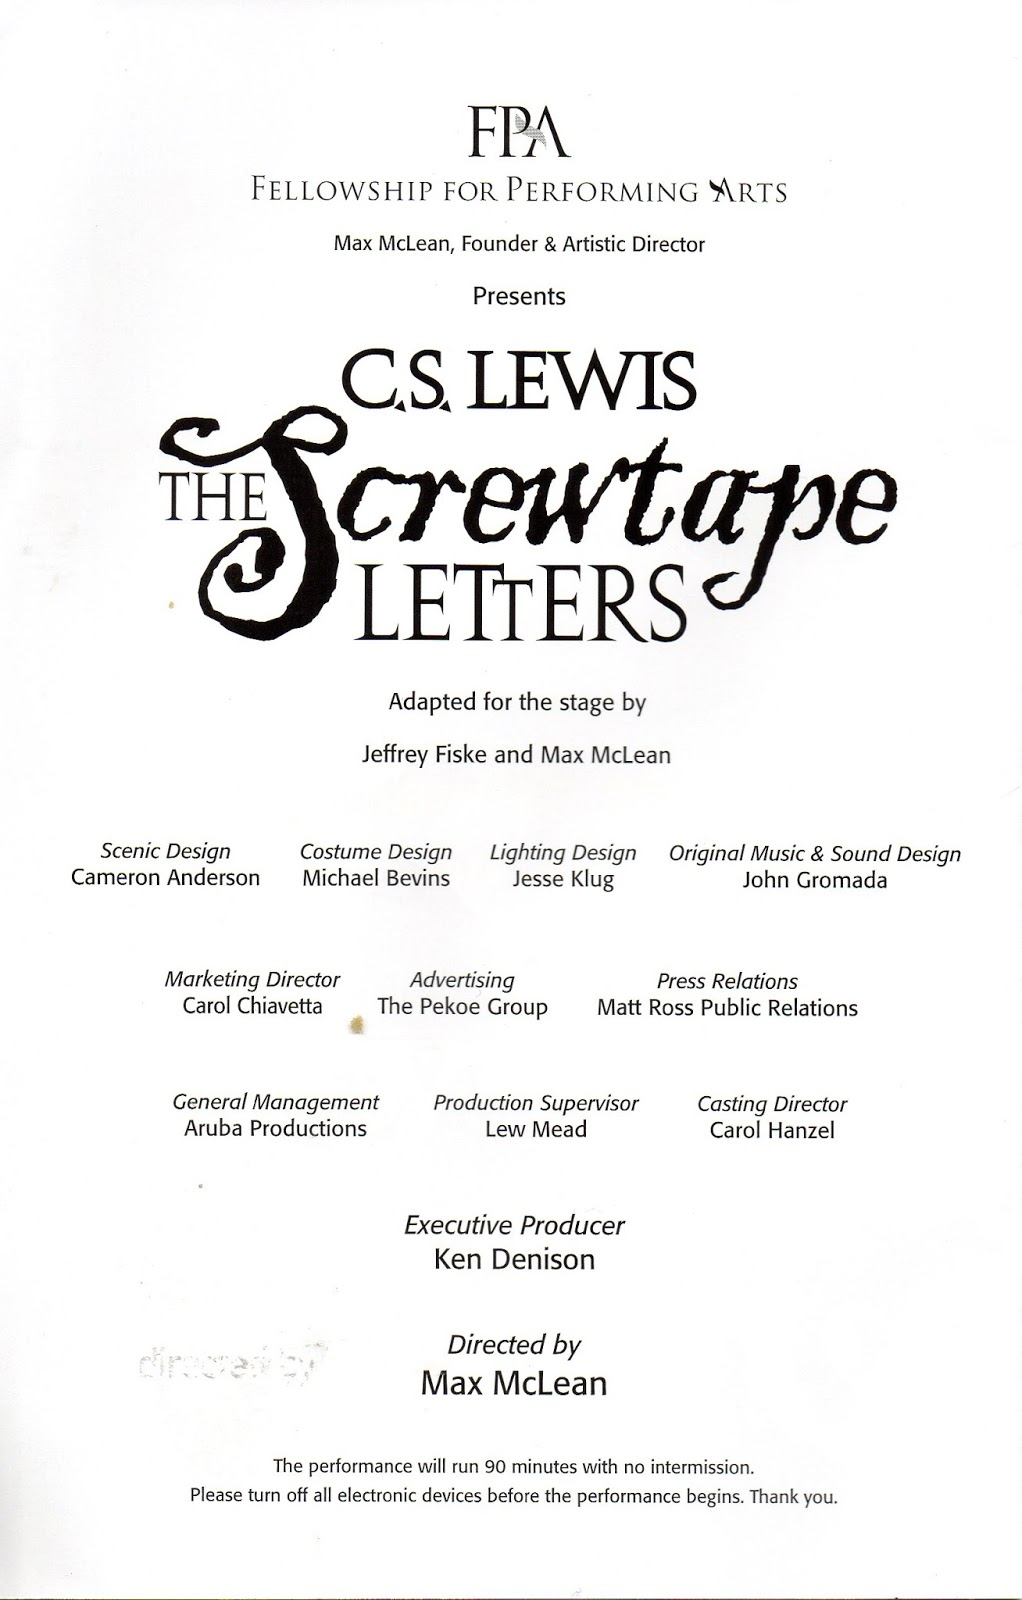 Give me a summary of screwtape letters?